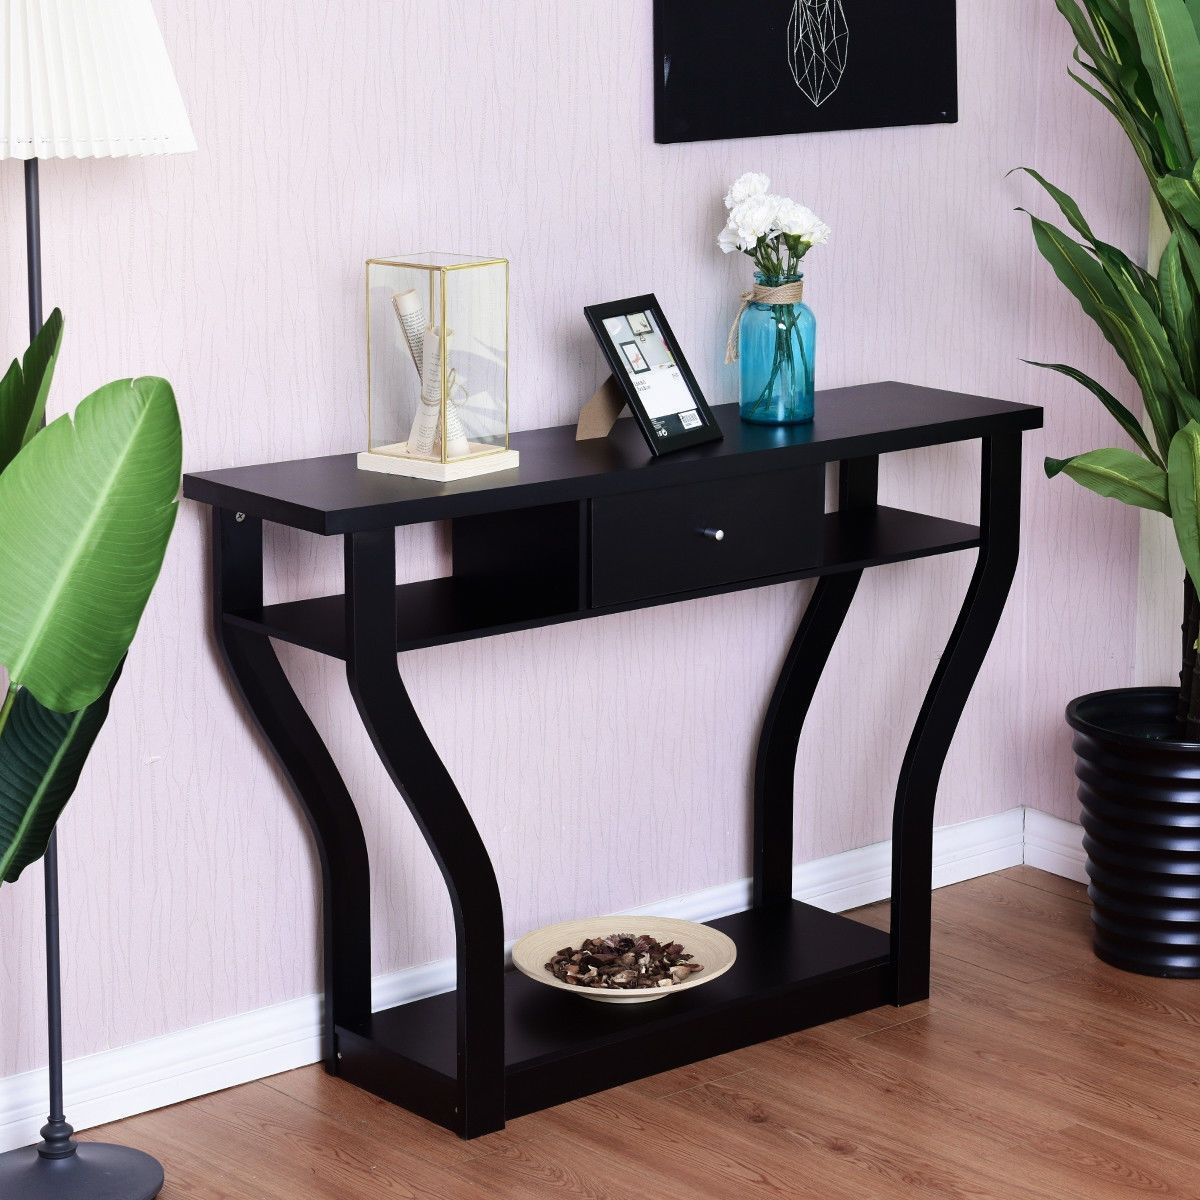 Modern Entryway Accent Console Table With Drawer Accent Console Drawer Entryway Glasso In 2020 Console Table Modern Console Tables Sofas For Small Spaces